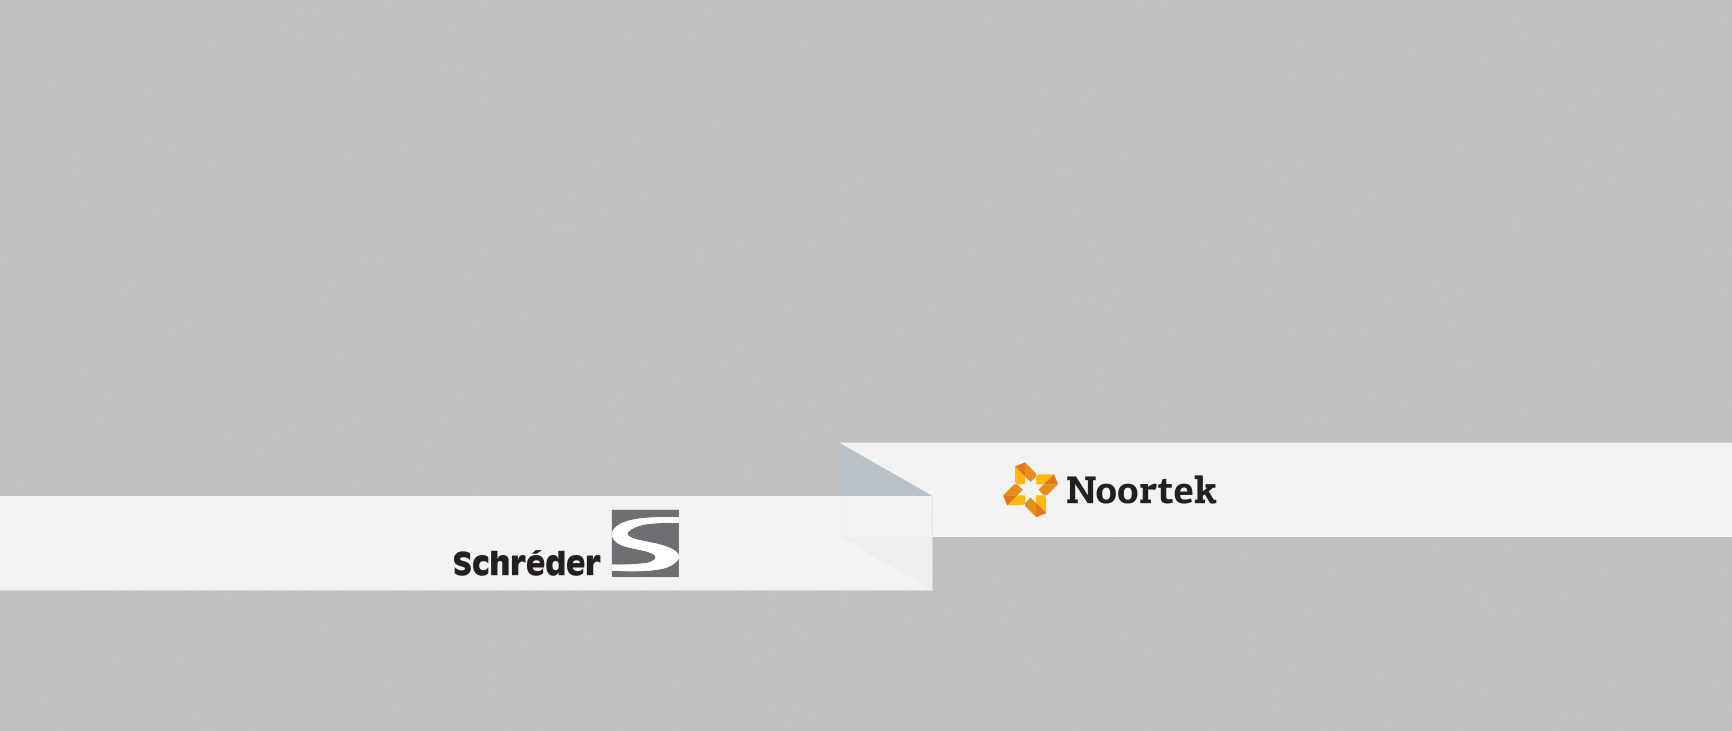 Noortek and Schreder Partnership